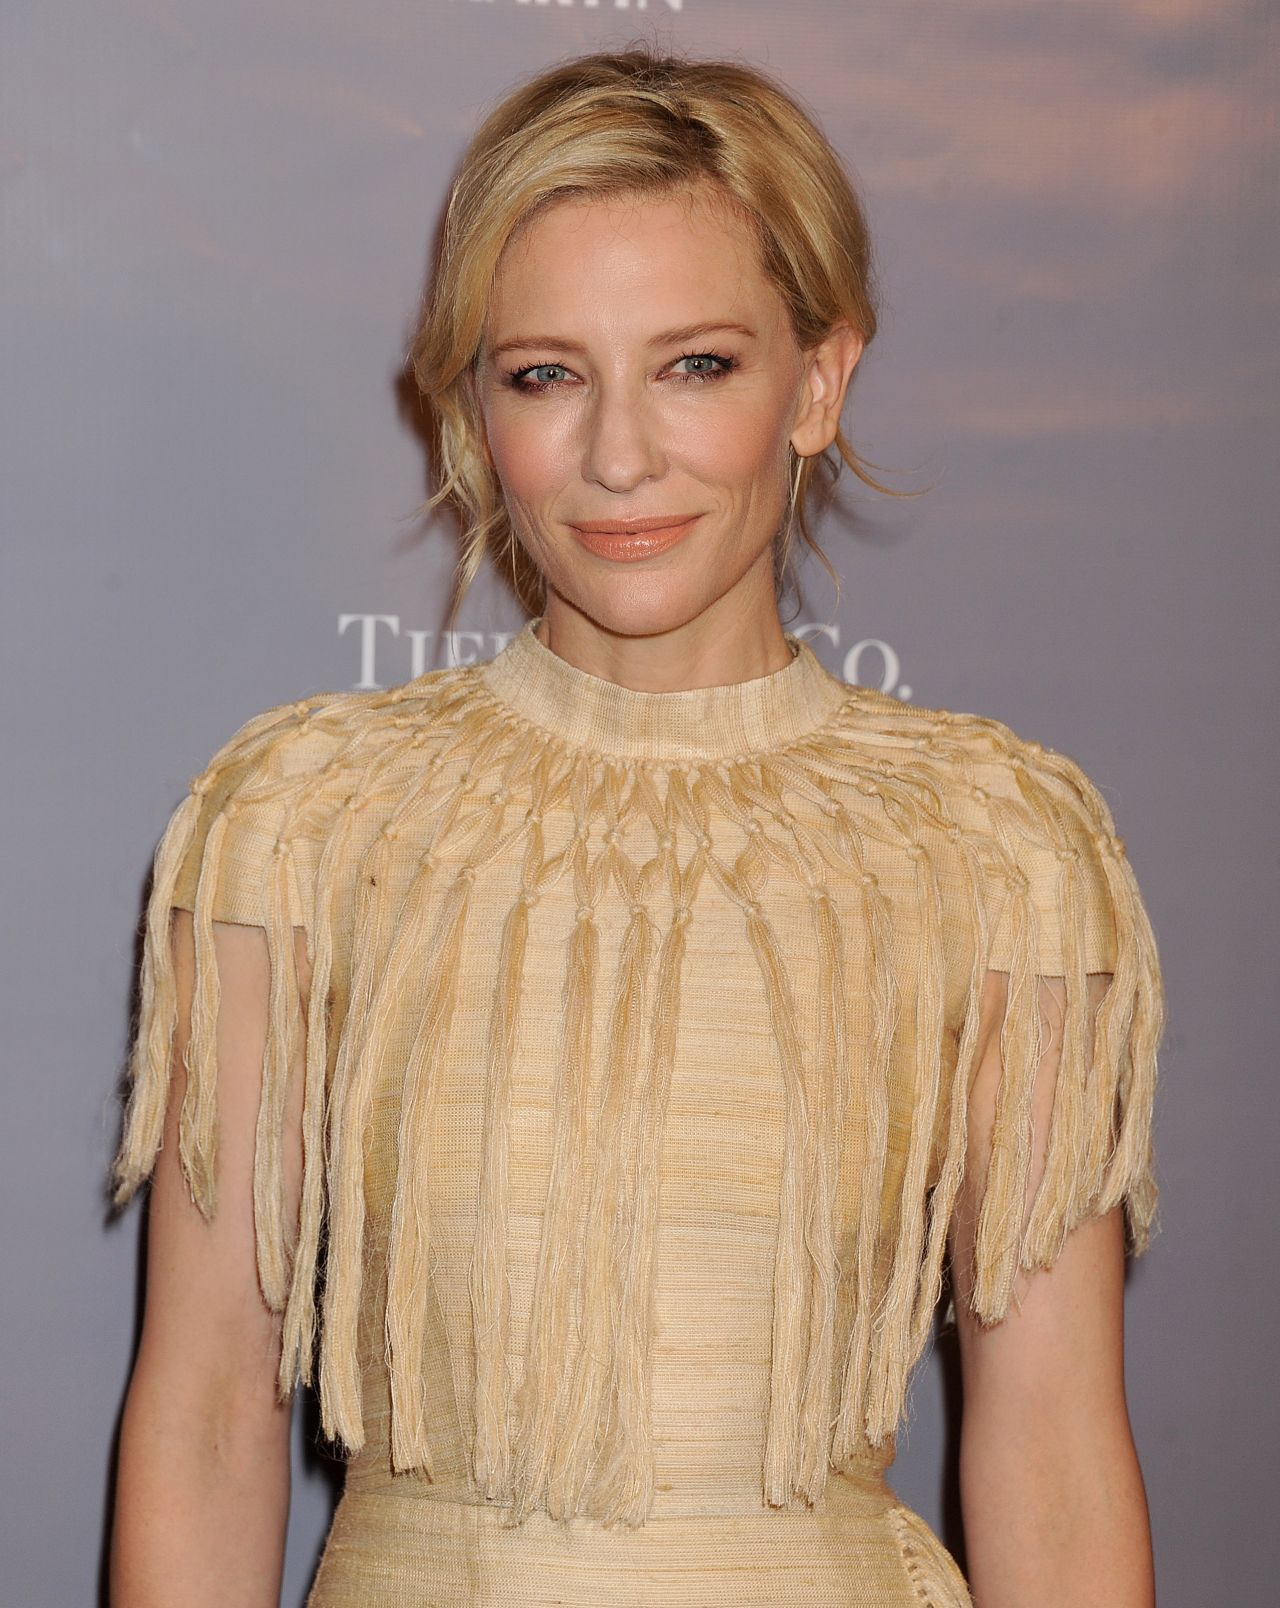 Cate Blanchett - 2014 Rodeo Drive Walk of Style - March 2014